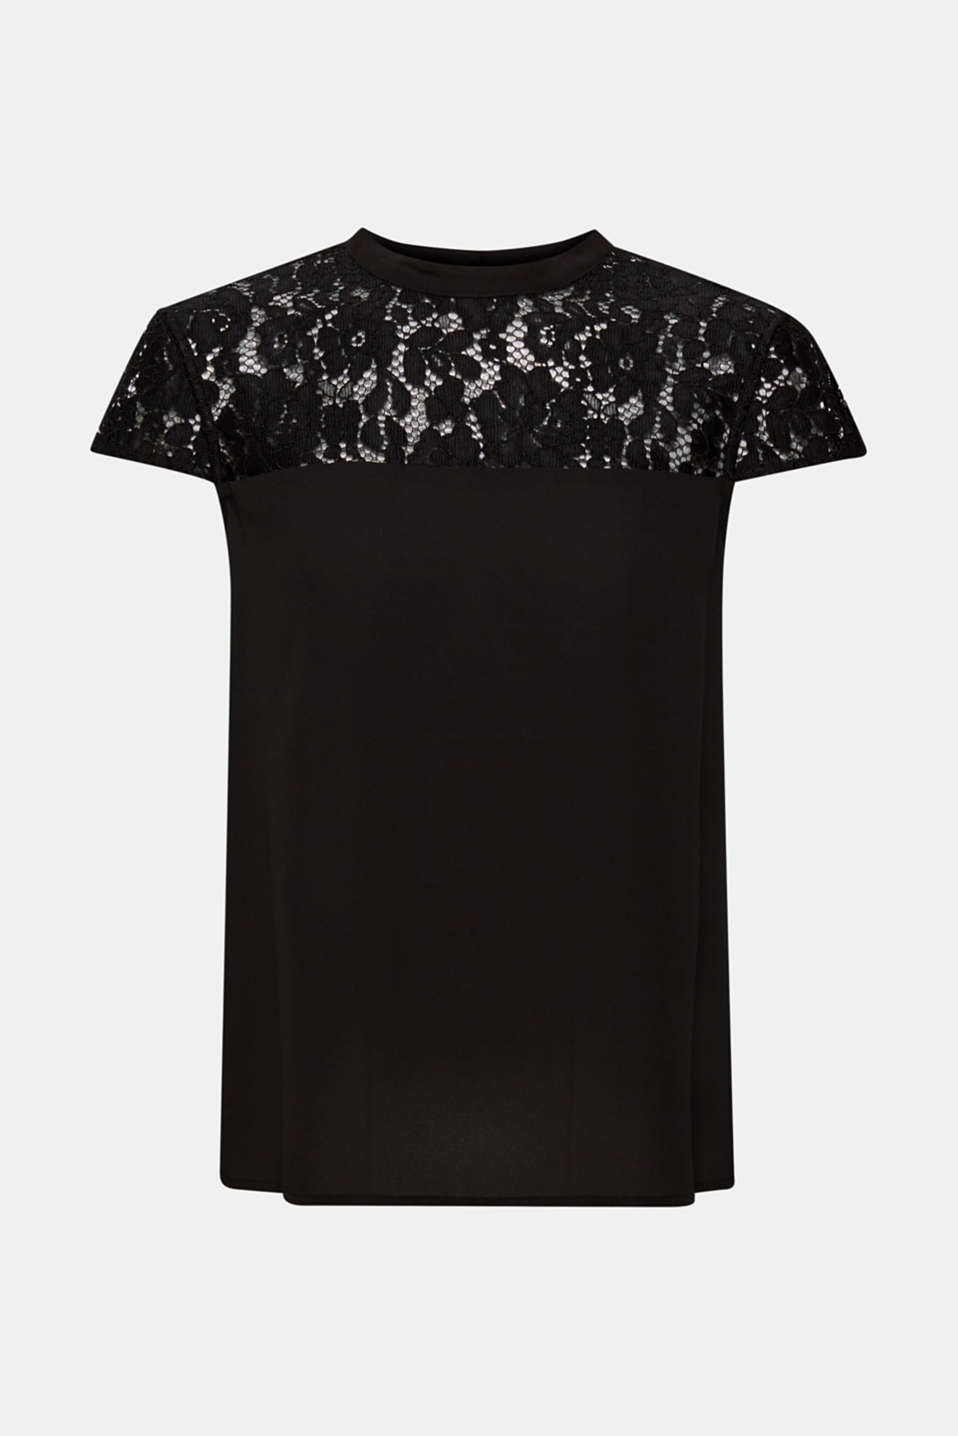 Esprit - blouse top with a lace section